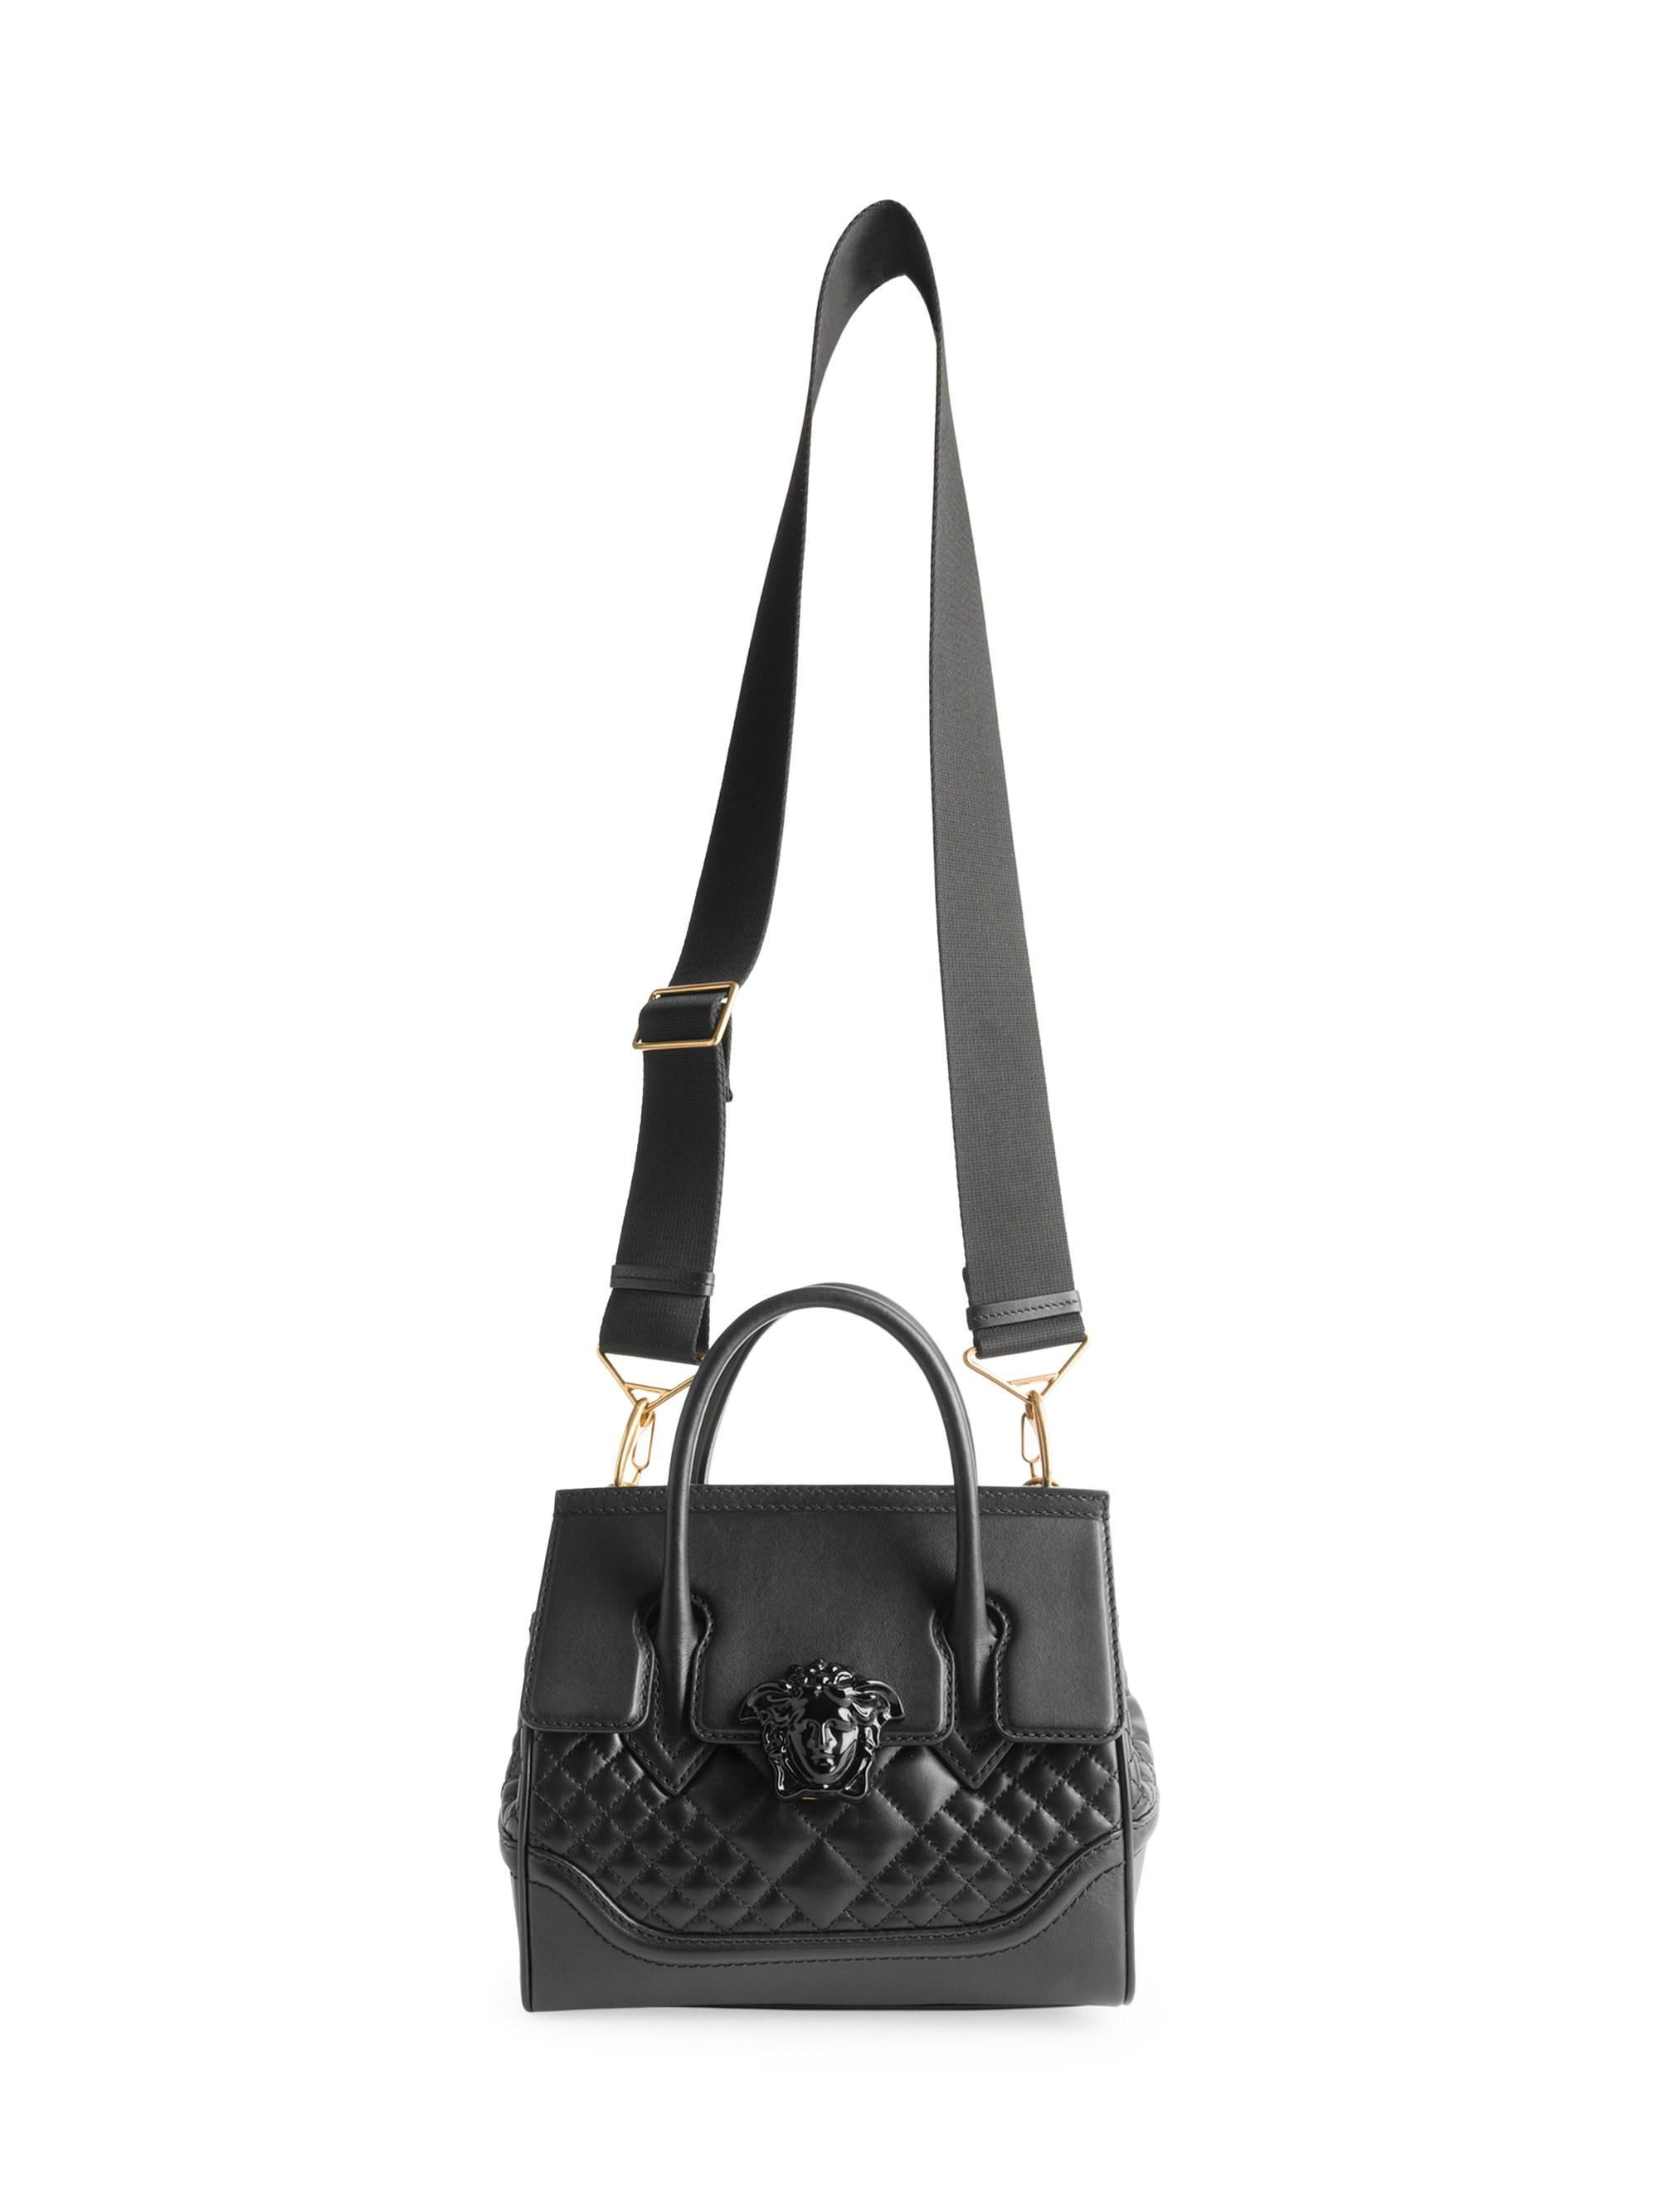 Lyst - Versace Quilted Palazzo Empire Top Handle Bag in Black 1e8acd19e9fcb